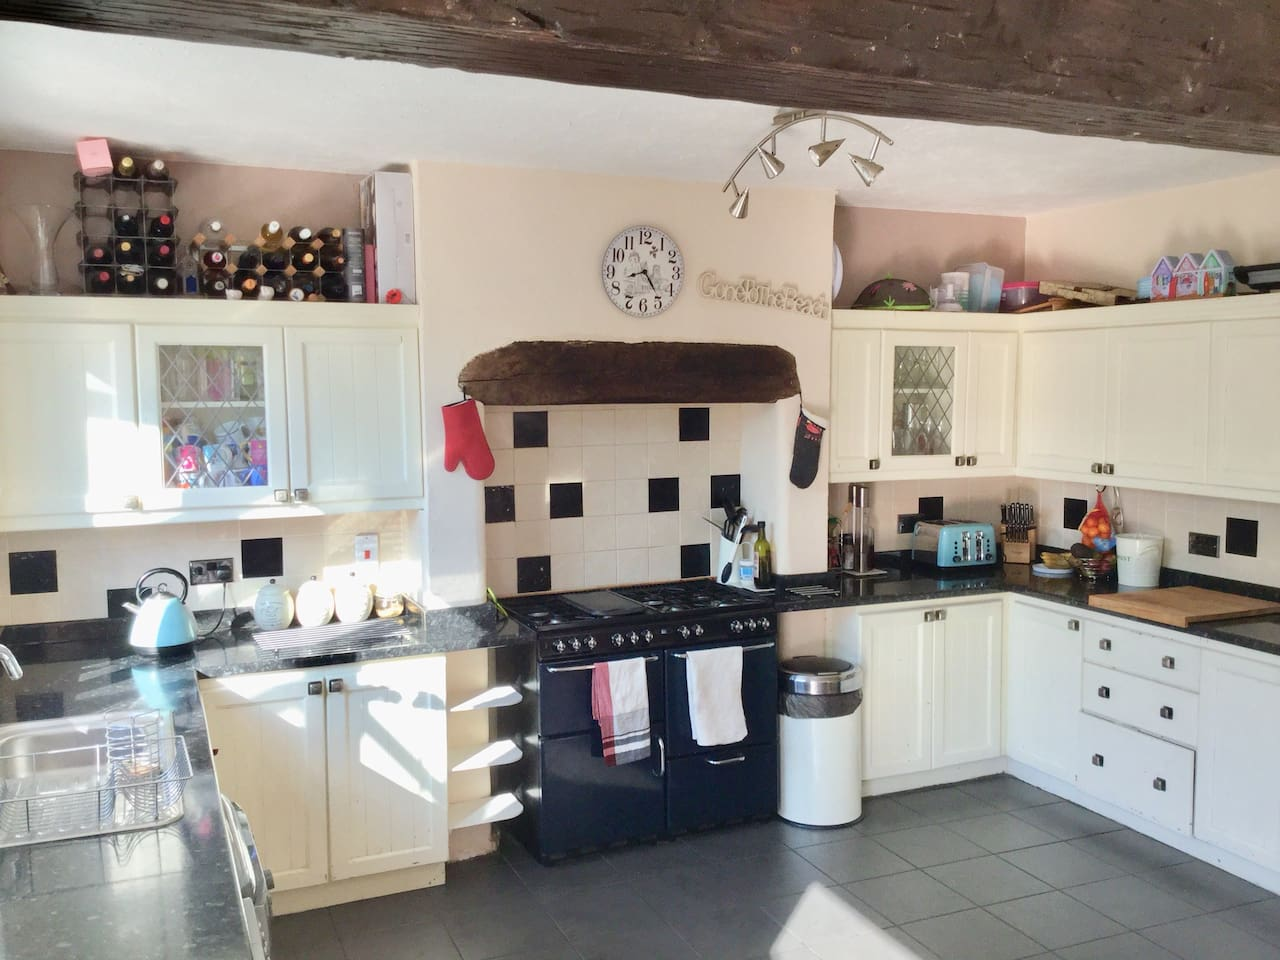 Kitchen Diner - fully equipped, range cooker, washer dryer, dishwasher and cold water dispenser